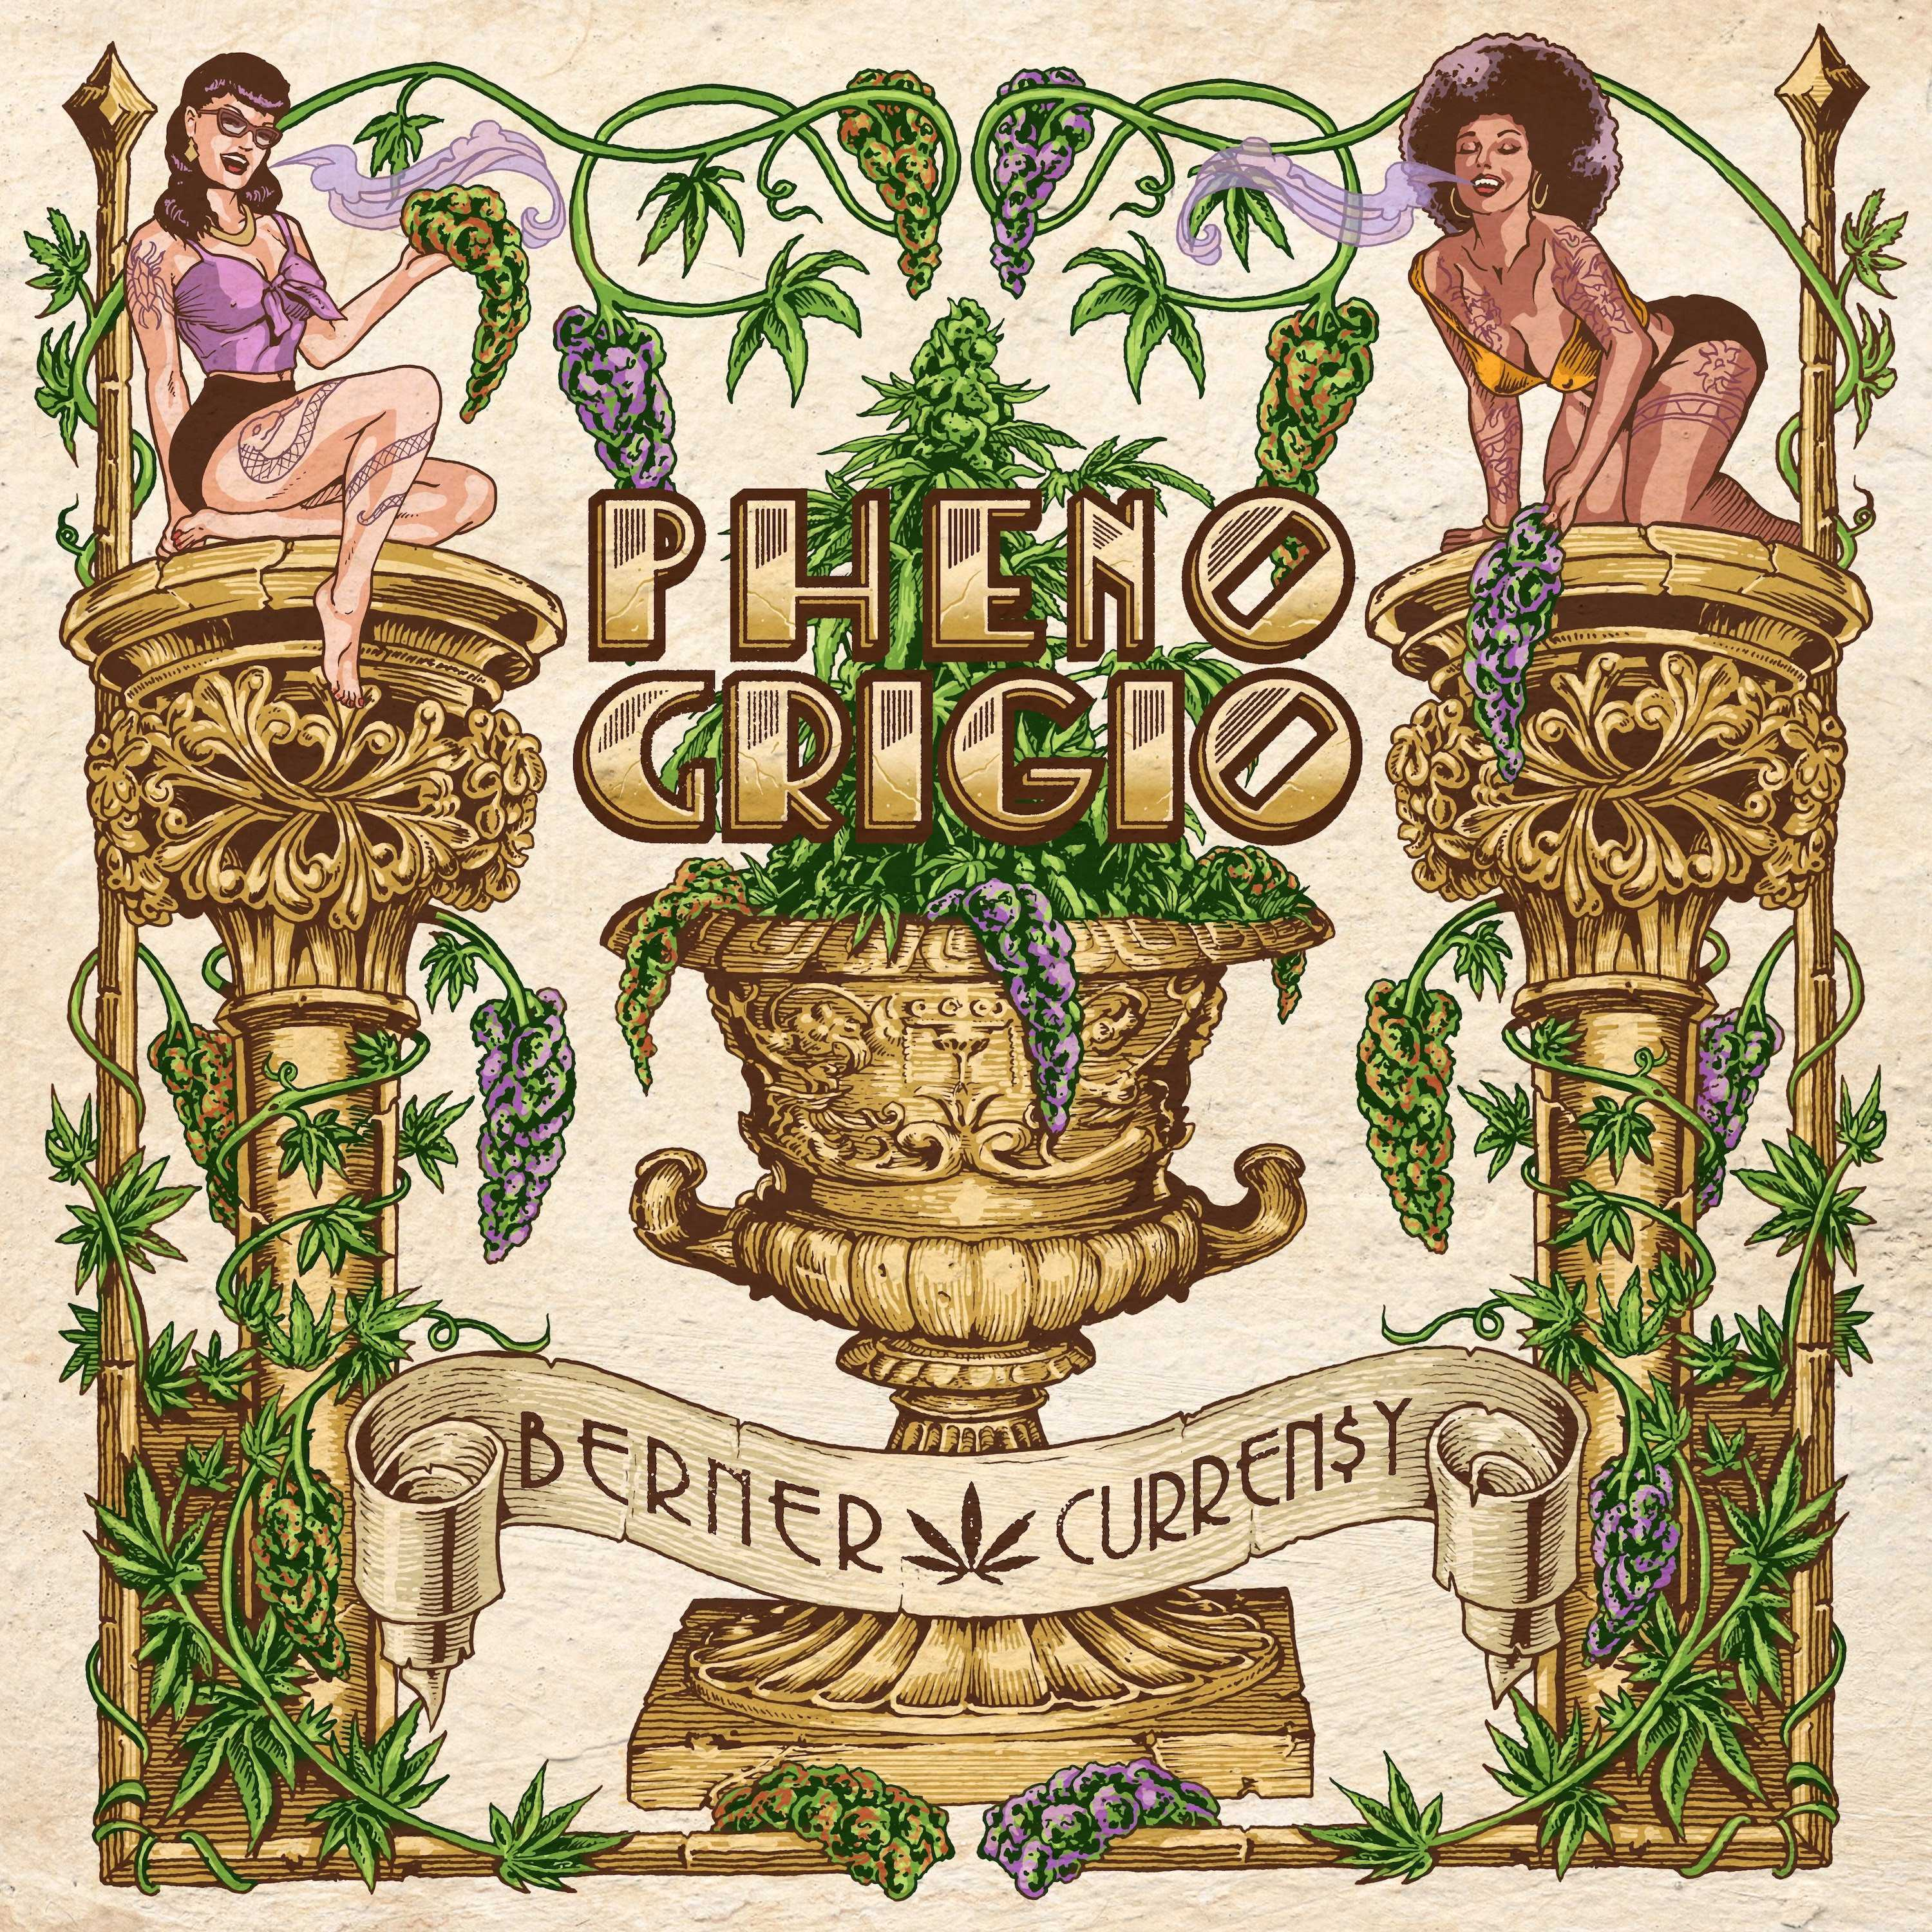 Album Stream: Berner & Curren$y – Pheno Grigio [Audio]